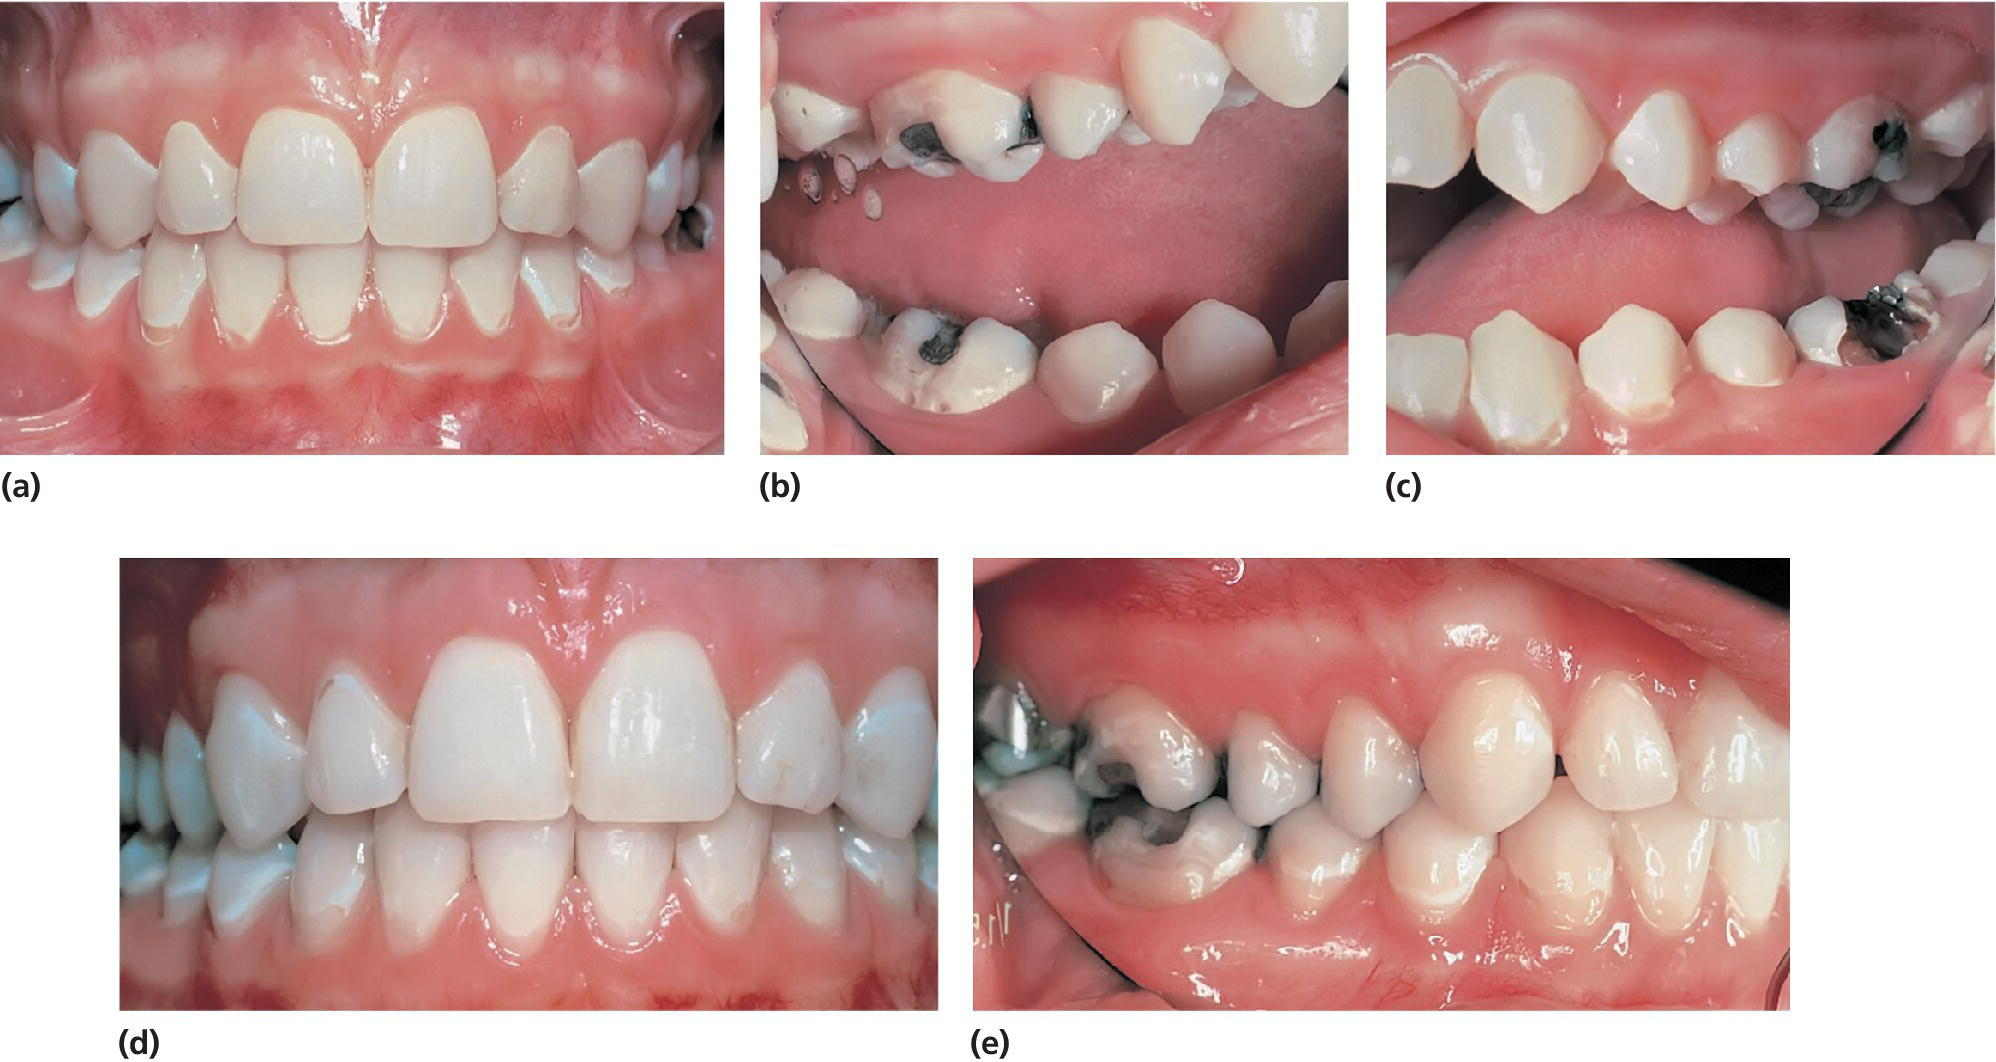 Photos displaying teeth of a 13-year-old girl, with active caries (a–c), same teeth with adequate caries control, 5 years later (d), and same teeth still with adequate caries control, another 3 years later (e).